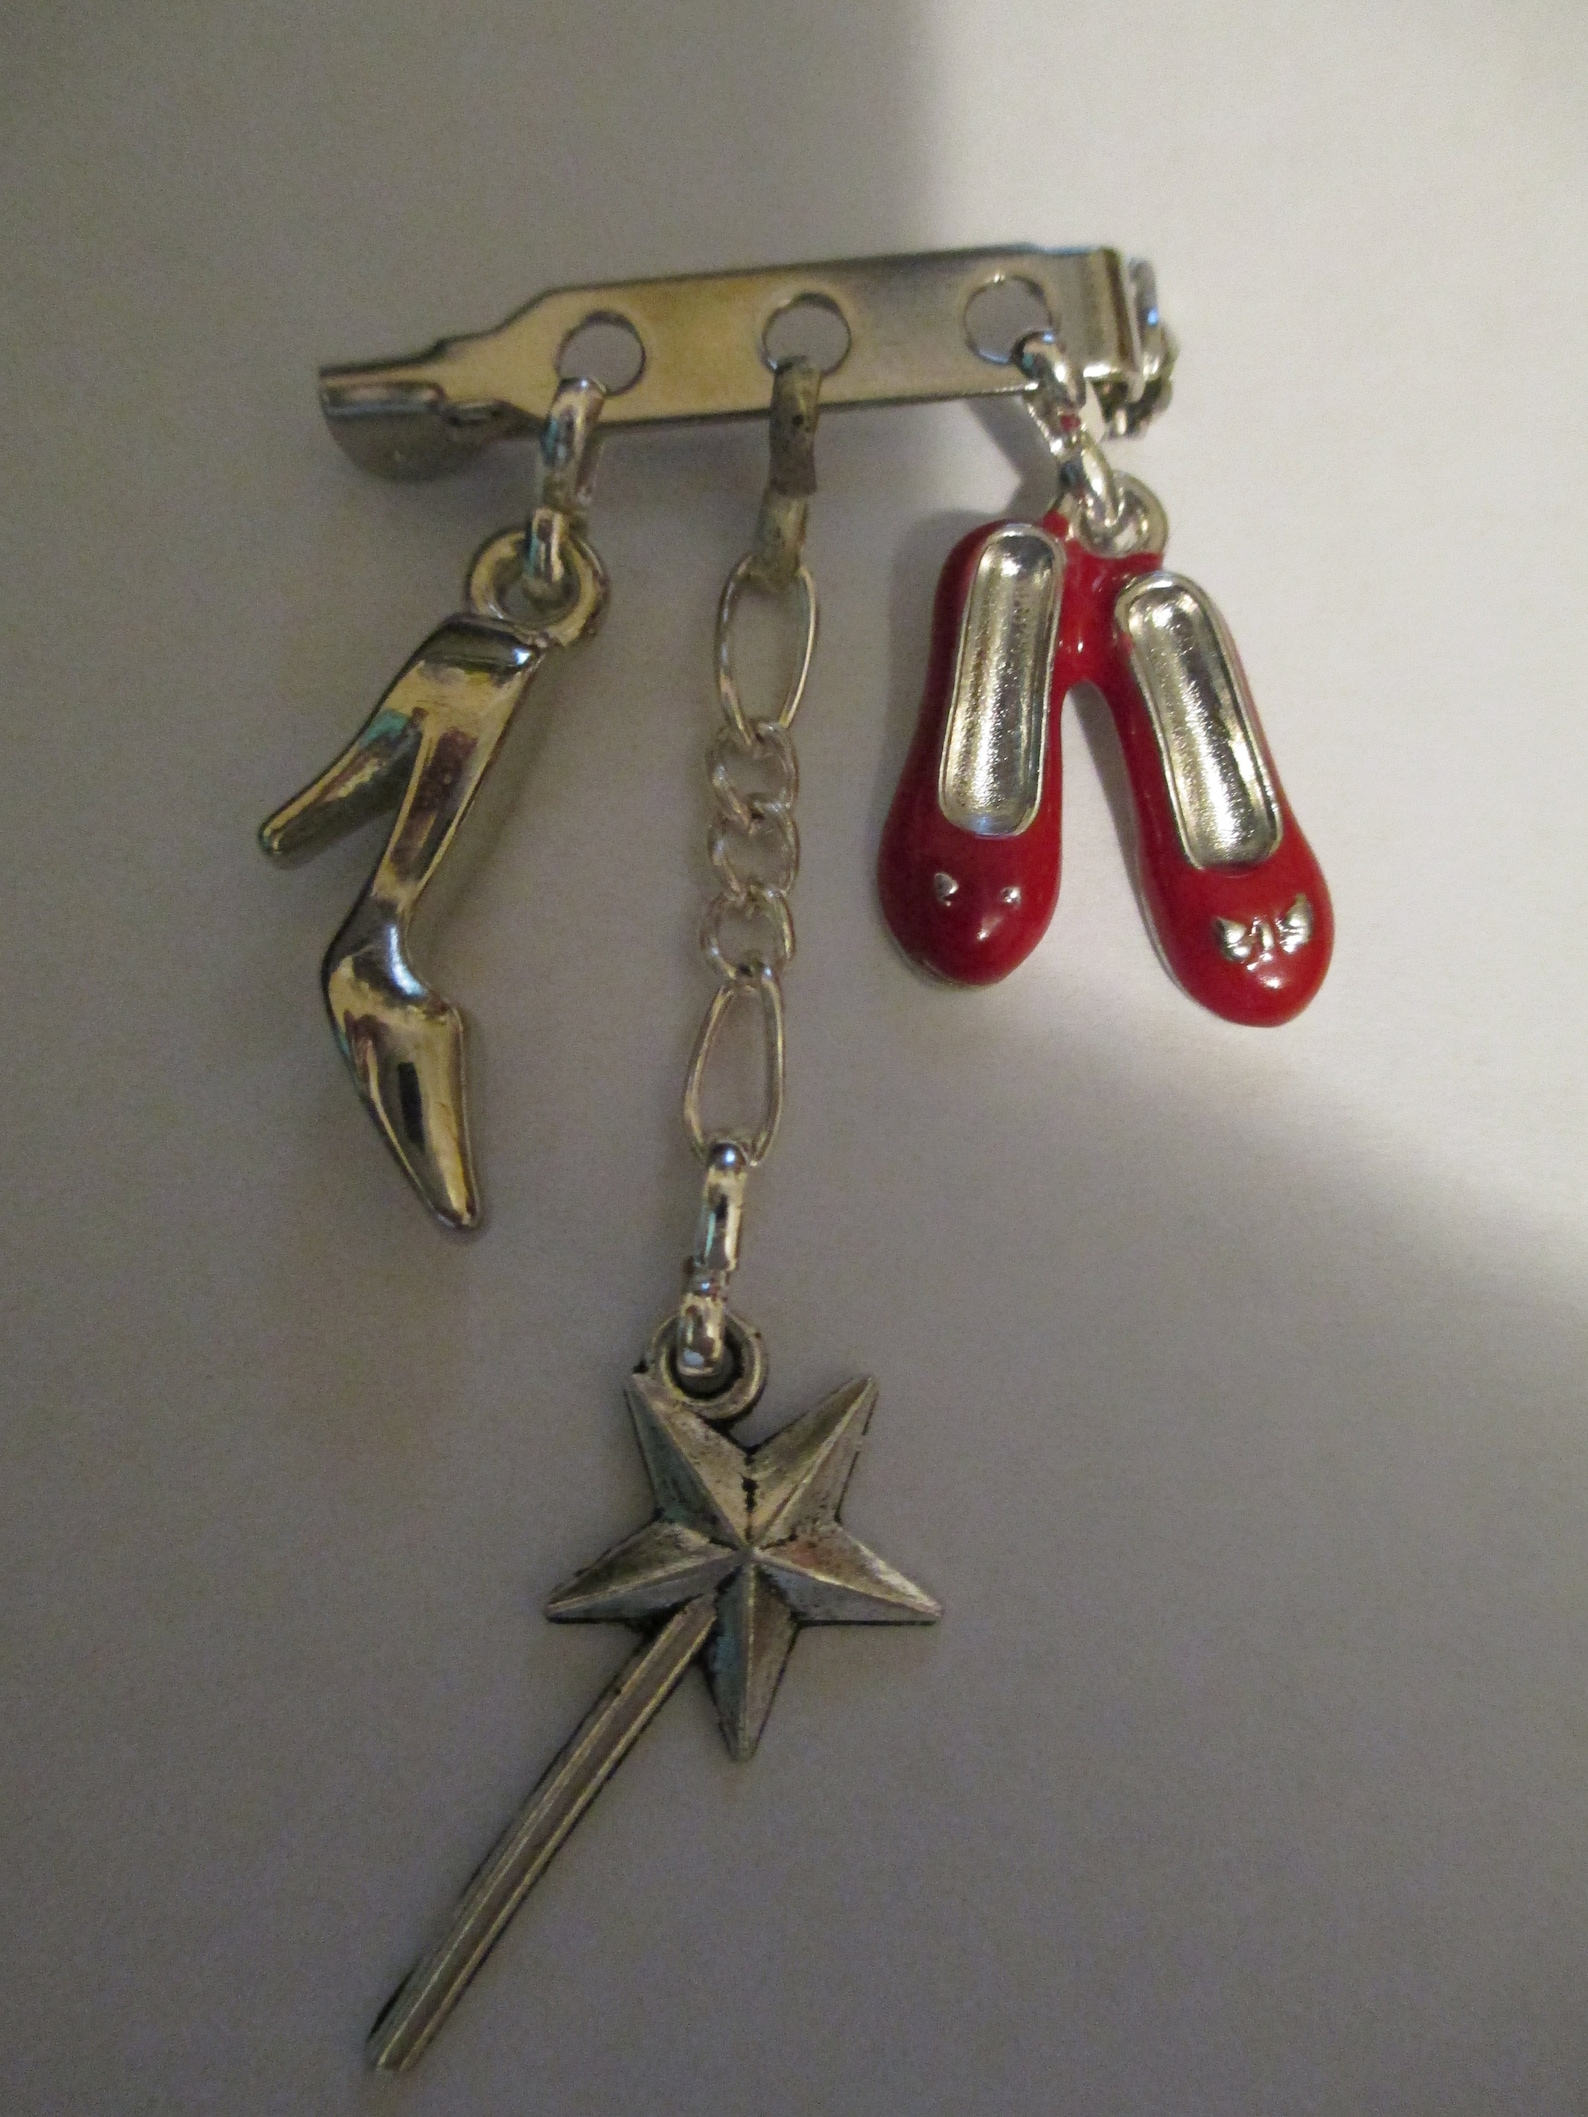 a brooch for fans of dorothy in wizard of oz, cinderella, ballet dancing, fairies,. red enamelled shoes, fairie/angle wand, sing